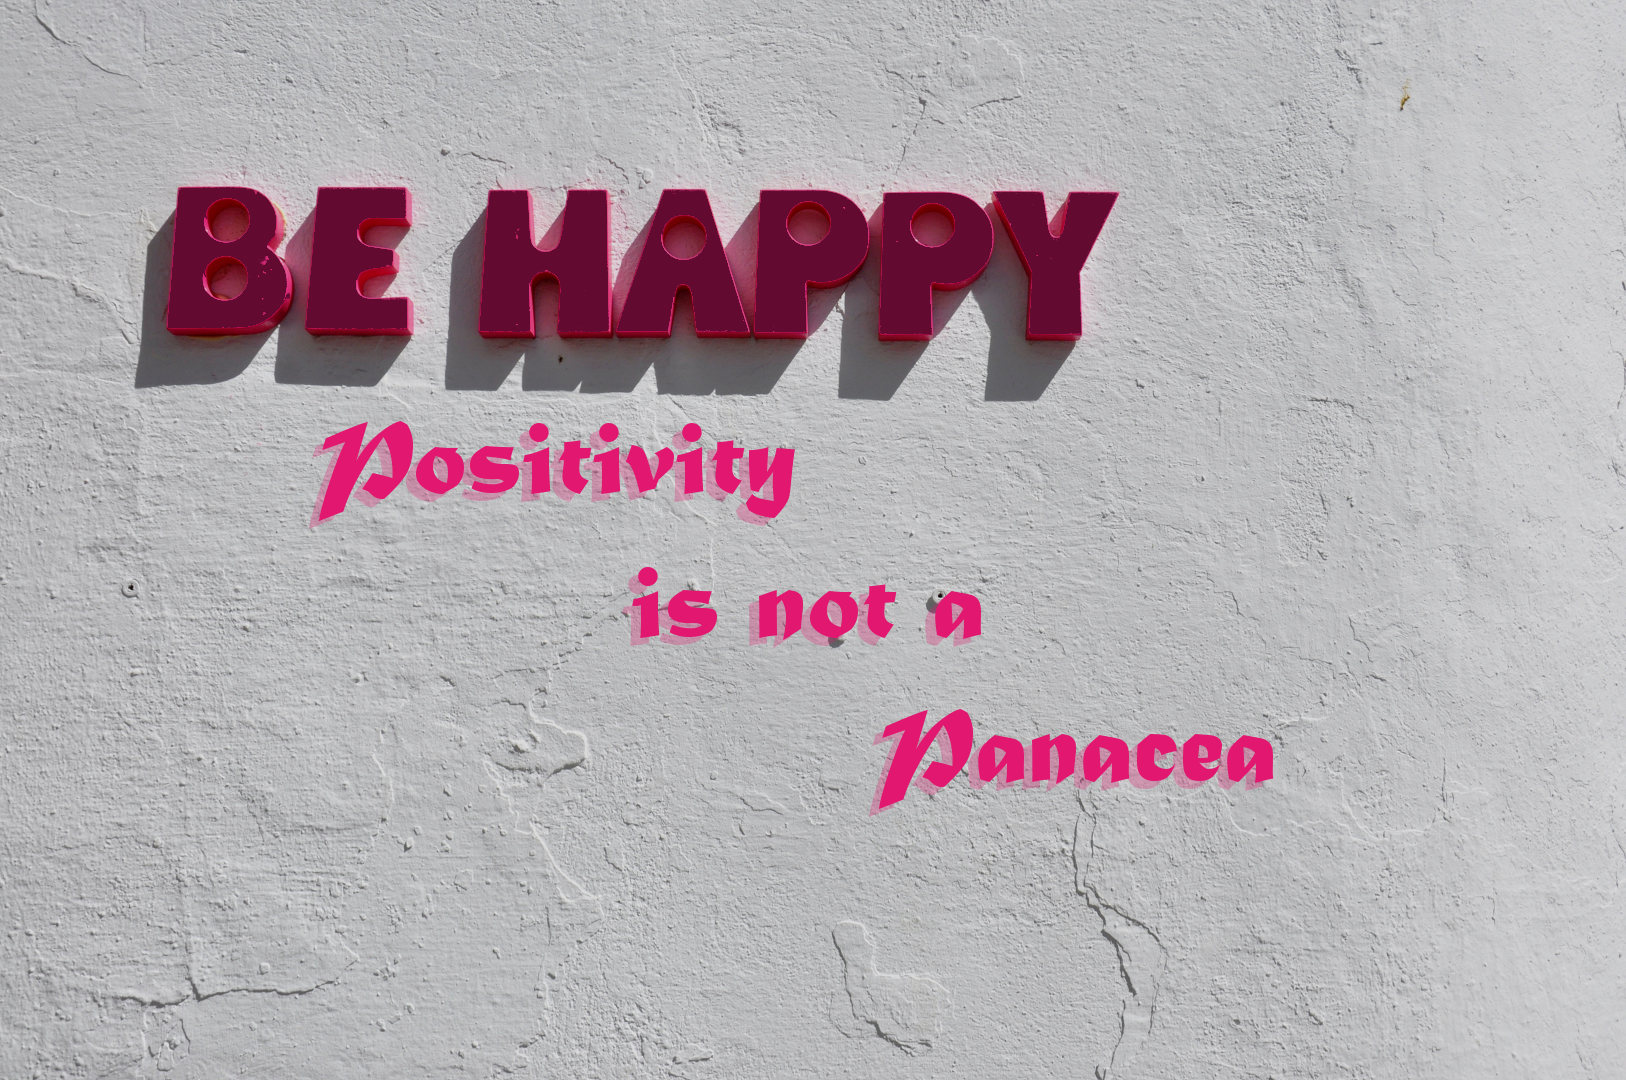 Positivity is not a Panacea